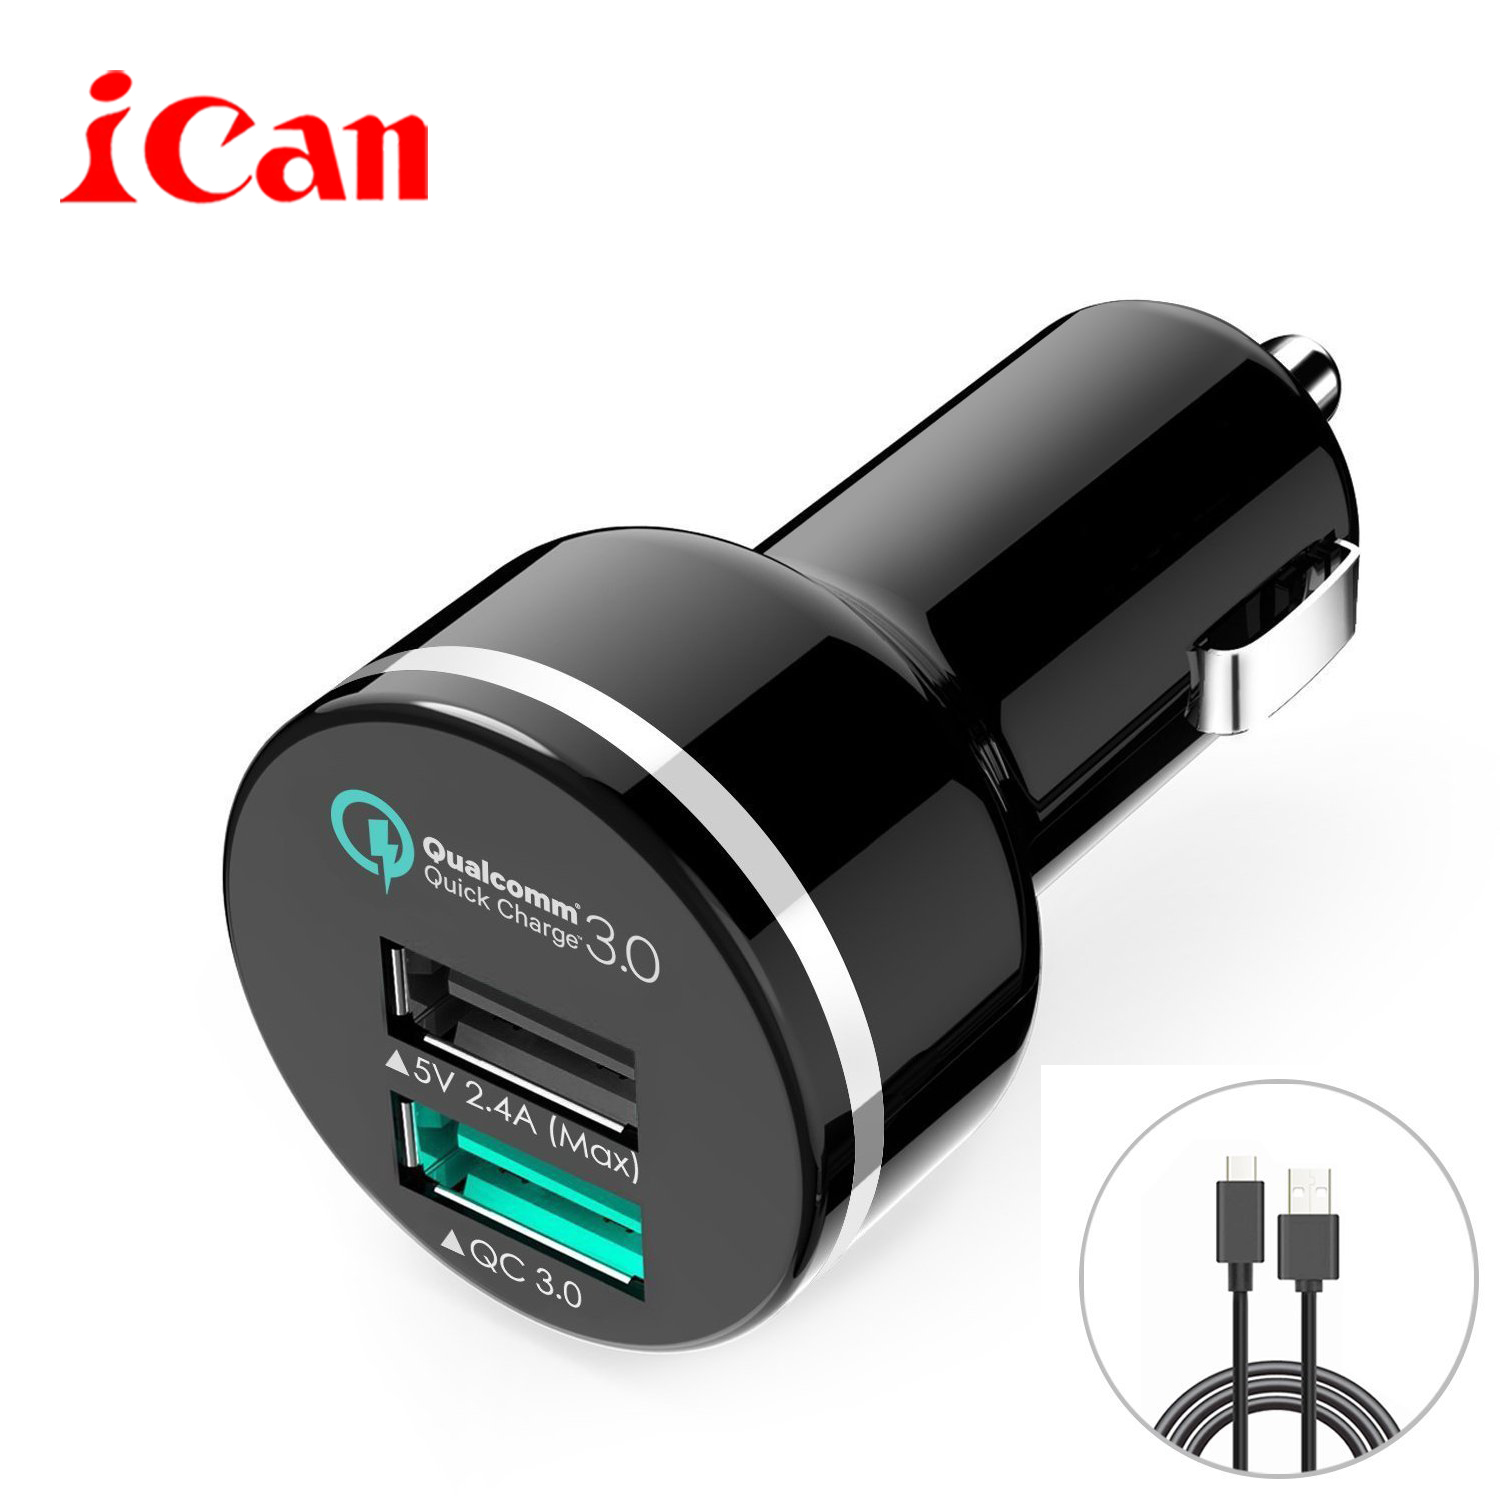 car-charger Qualcomm certificated QC3.0 car charger with 2 usb ports with 3ft micro usb cable rapid charging for iphone samsung  samsung rapid charger | Samsung Galaxy Note 4 Tip:  Quick Charging car font b charger b font Qualcomm certificated QC3 0 car font b charger b font